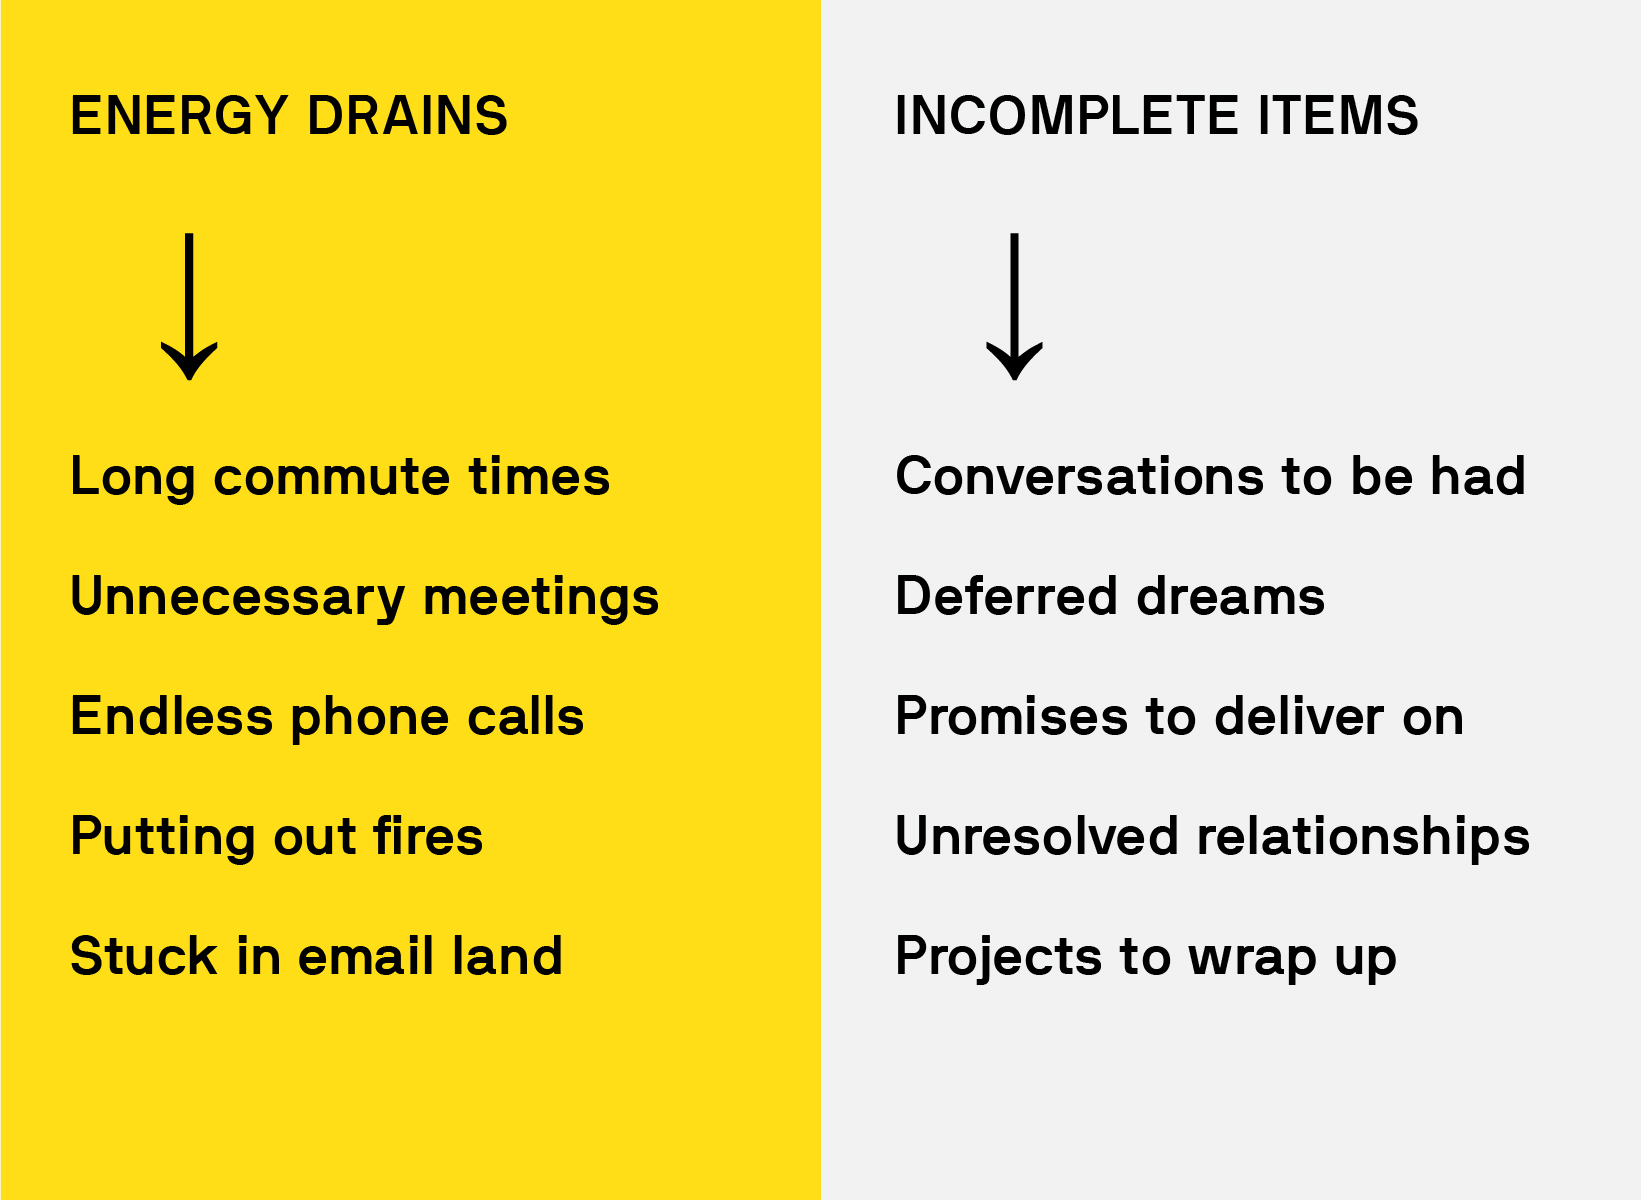 List of drains and incompletions